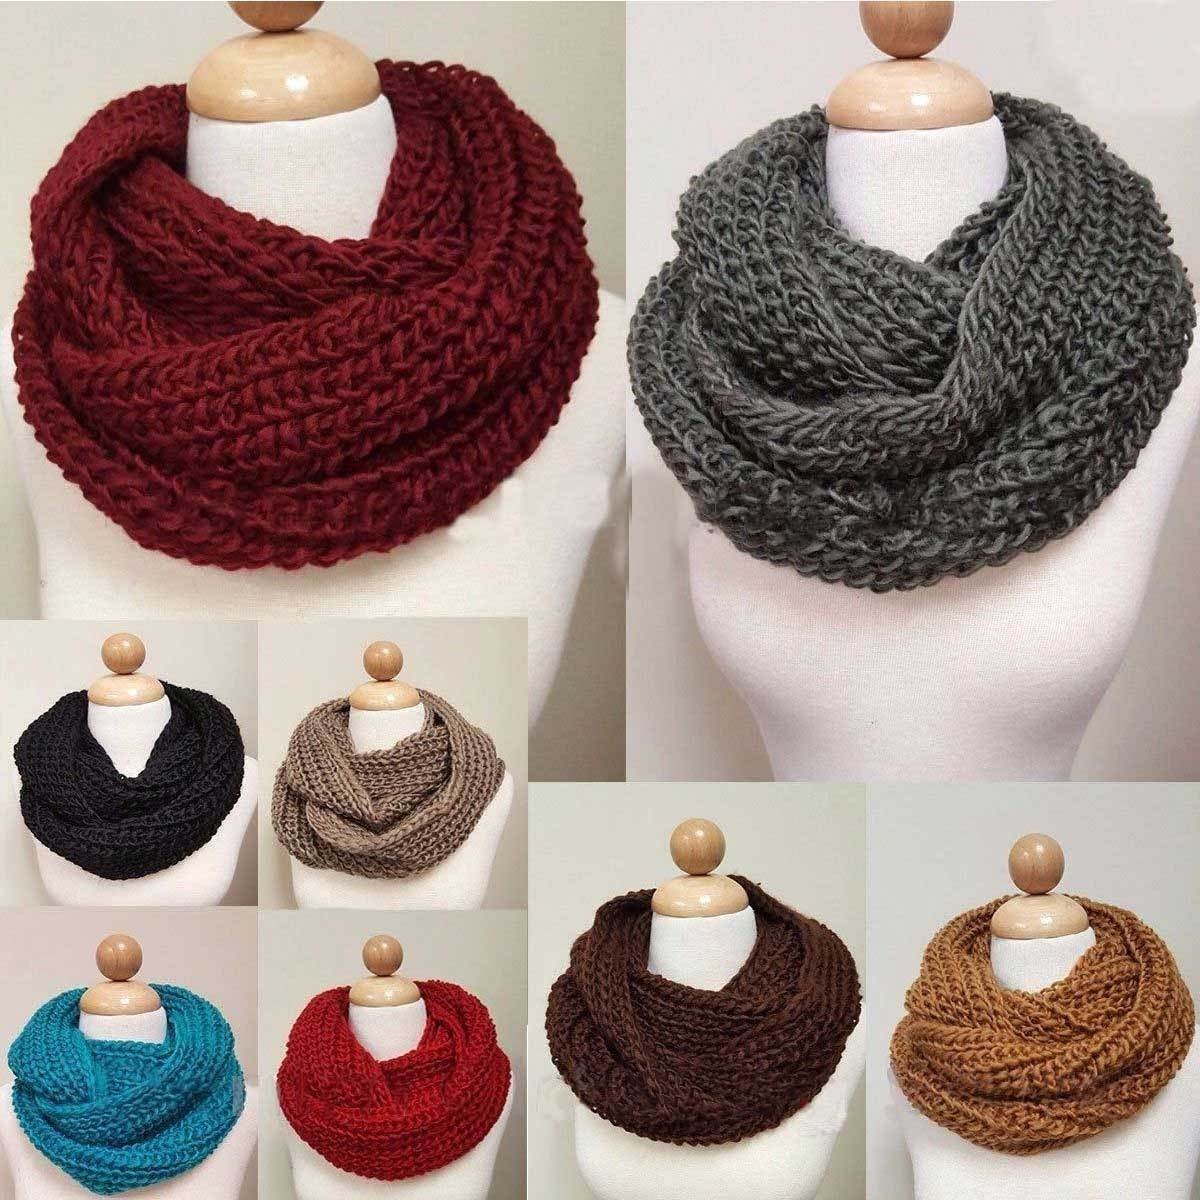 Scarf -  Women's Warm Winter Infinity Circle Cable Knit Cowl Neck Thick Scarf Shawl Wrap